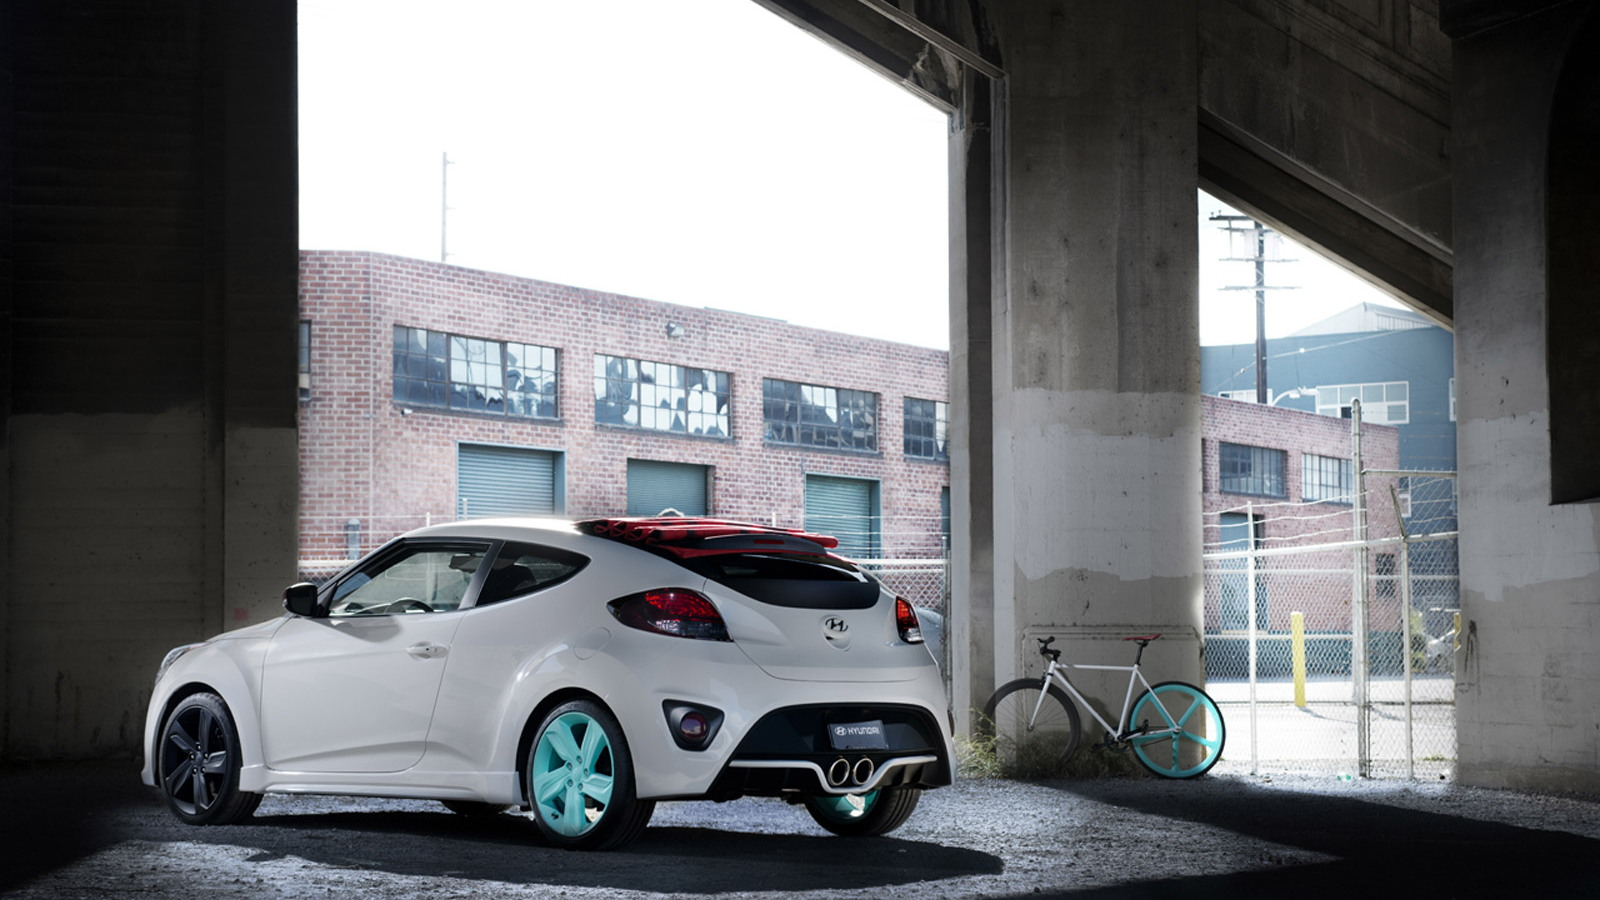 Hyundai Veloster C3 Roll Top concept car